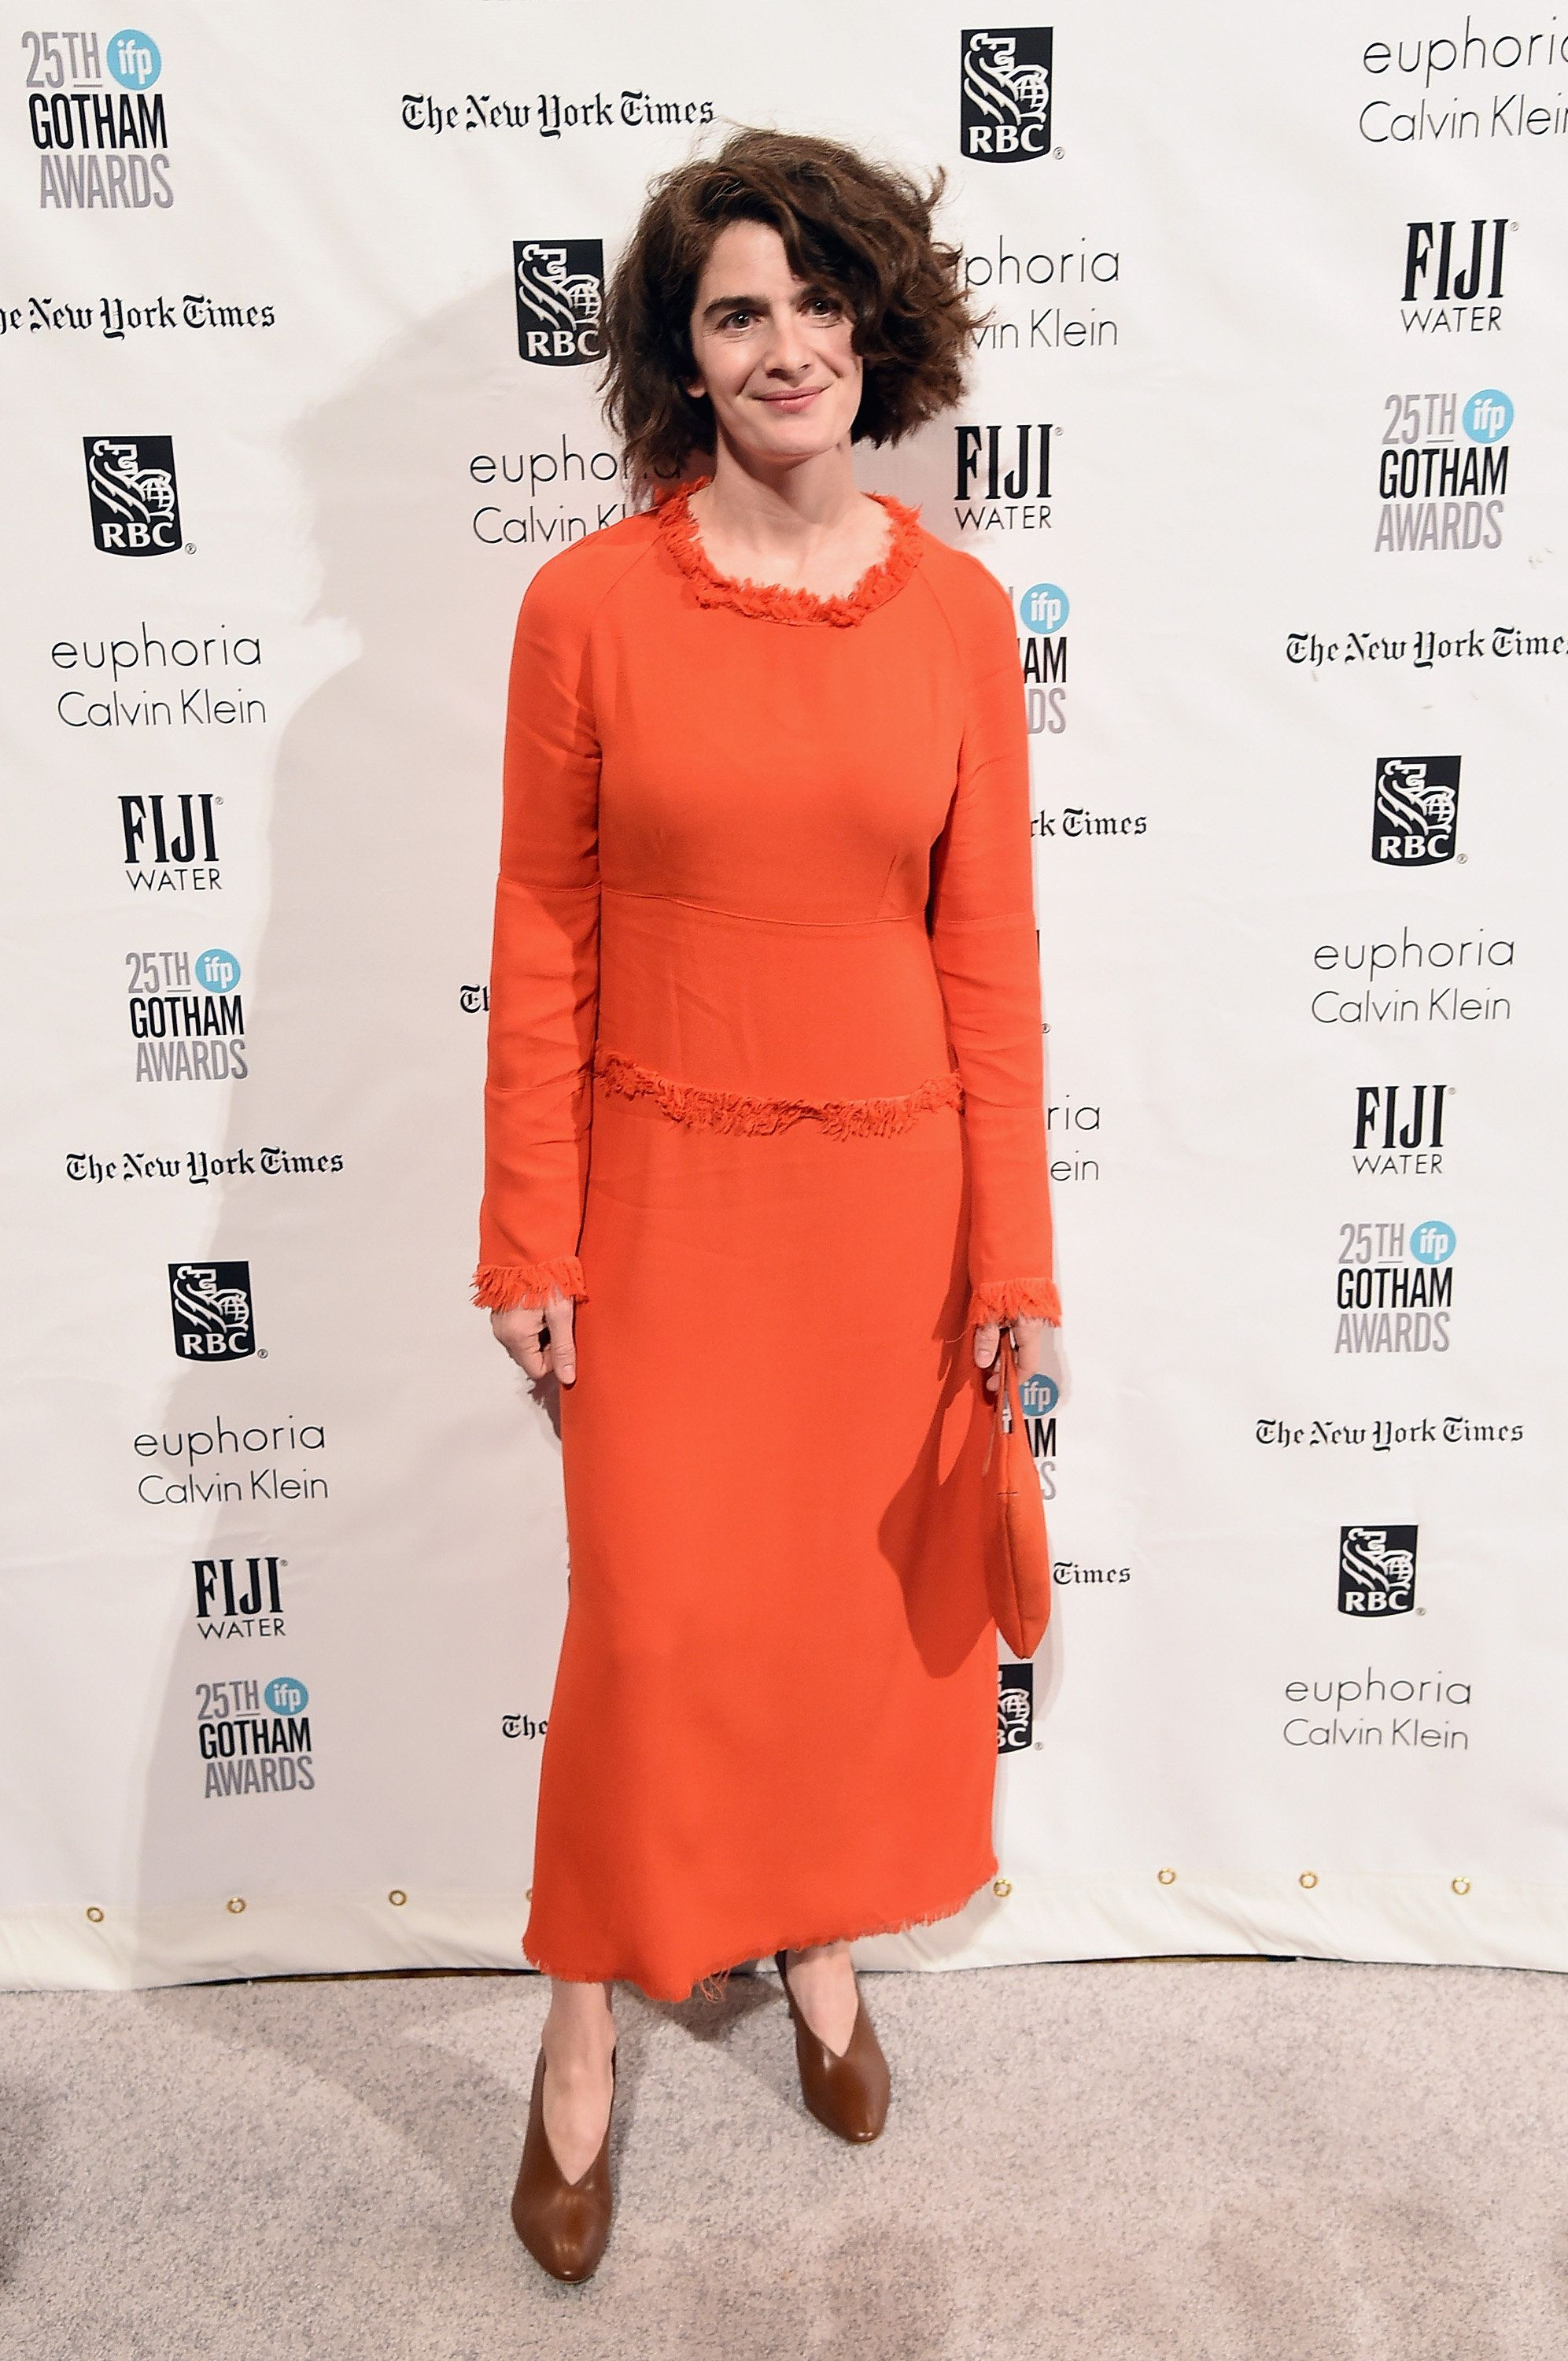 NEW YORK, NY - NOVEMBER 30:  Actress Gaby Hoffmann attends the 25th Annual Gotham Independent Film Awards at Cipriani Wall Street on November 30, 2015 in New York City.  (Photo by Theo Wargo/Getty Images)